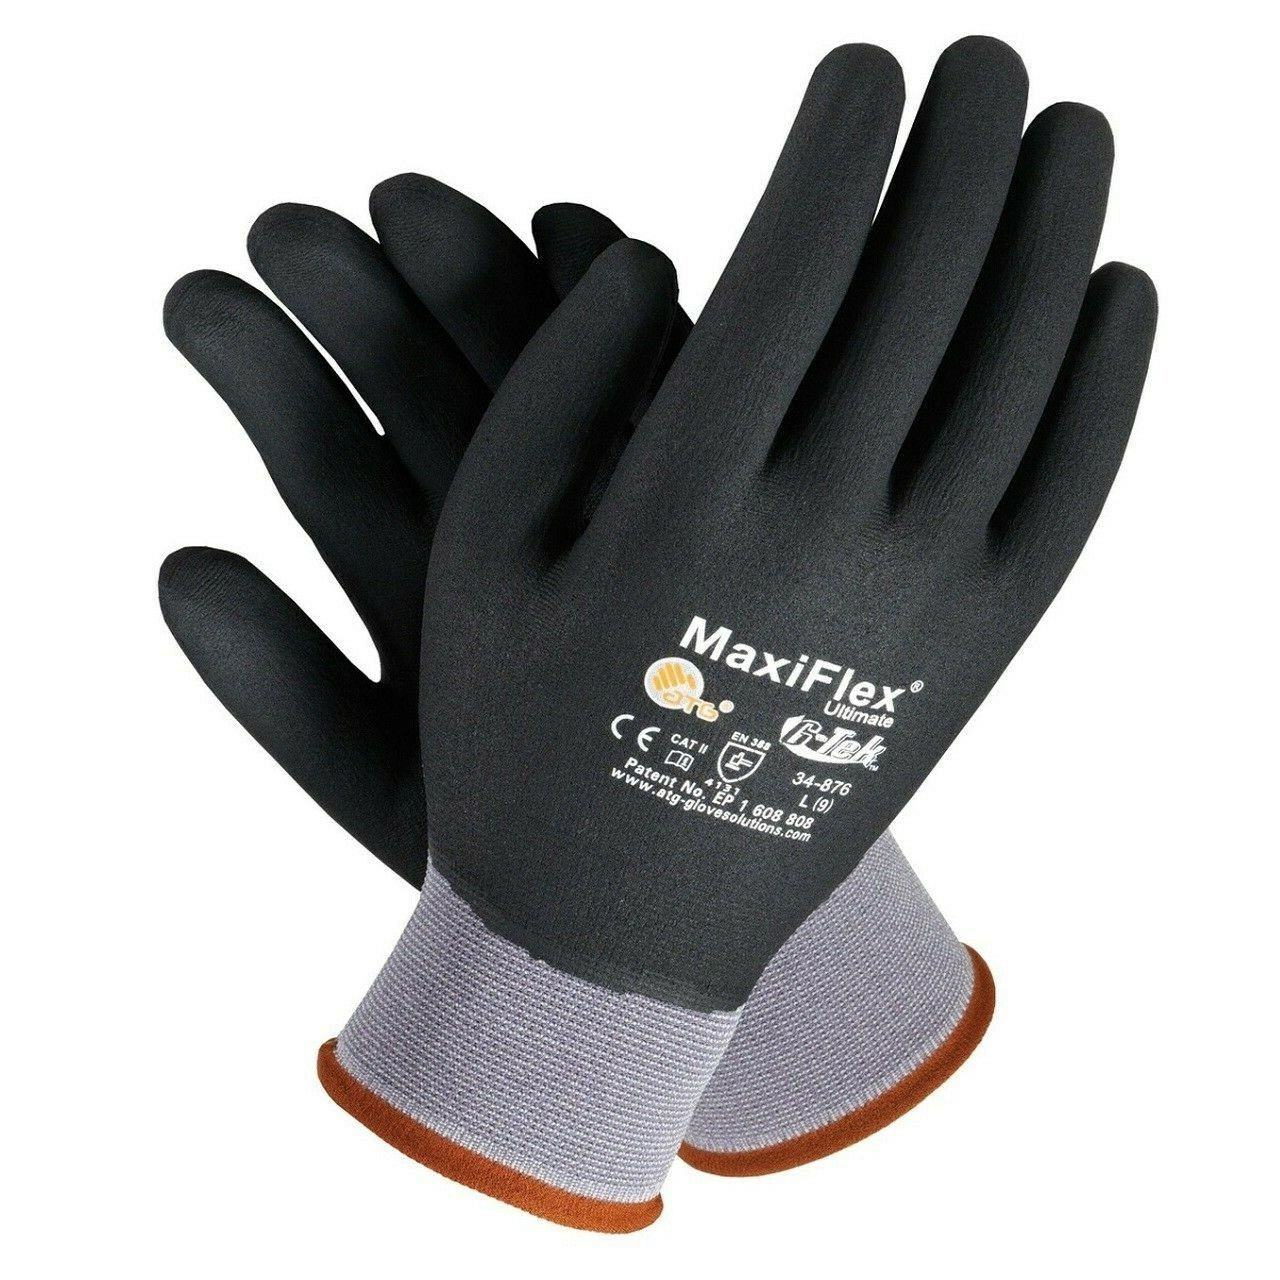 GTek 34-876 MaxiFlex Ultimate Nitrile Fully Coated Gloves 6 Pair Pack, Pick Size Business & Industrial